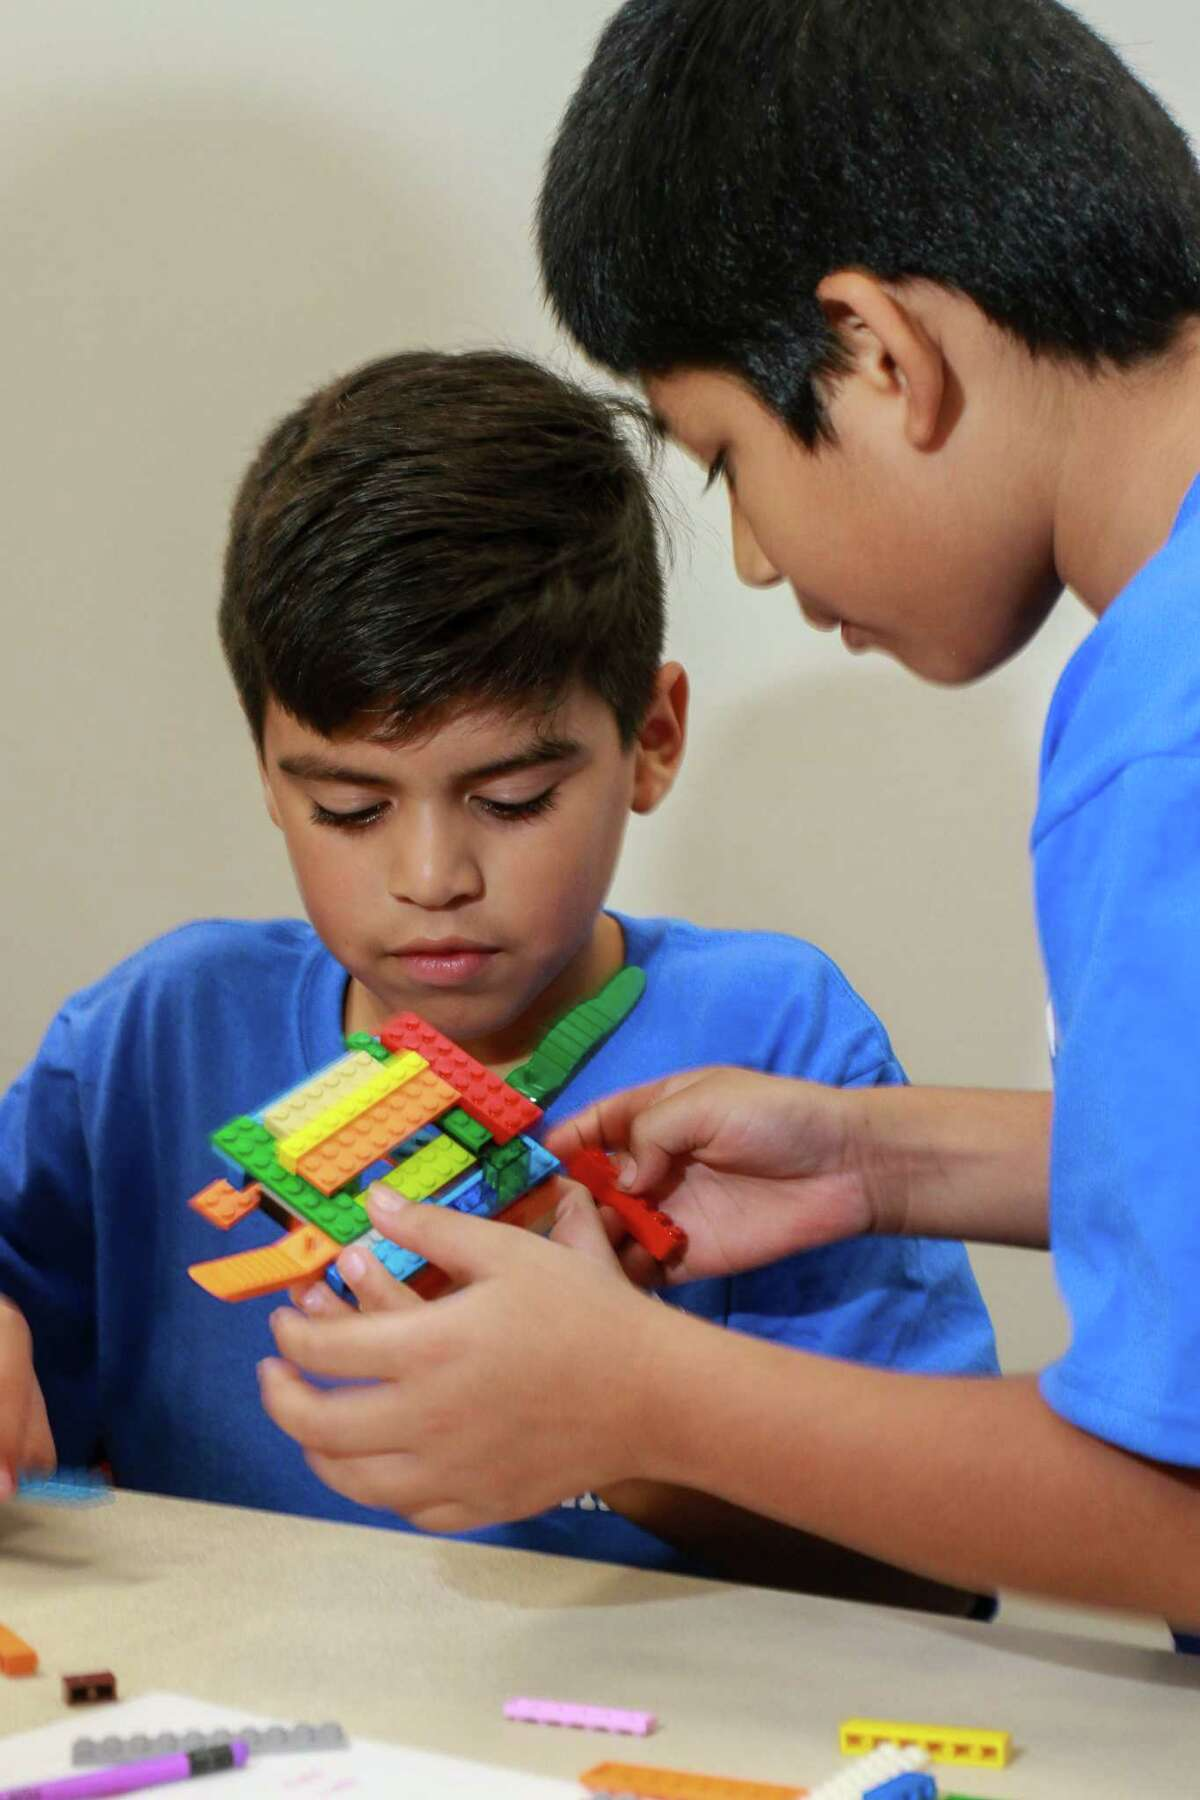 Joshua Gutierrez, 11, left, and John Acosta, 9, building a Lego boat as they learn about careers in STEM fields, part of the Comcast TechPak program. (For the Chronicle/Gary Fountain, October 7, 2017)